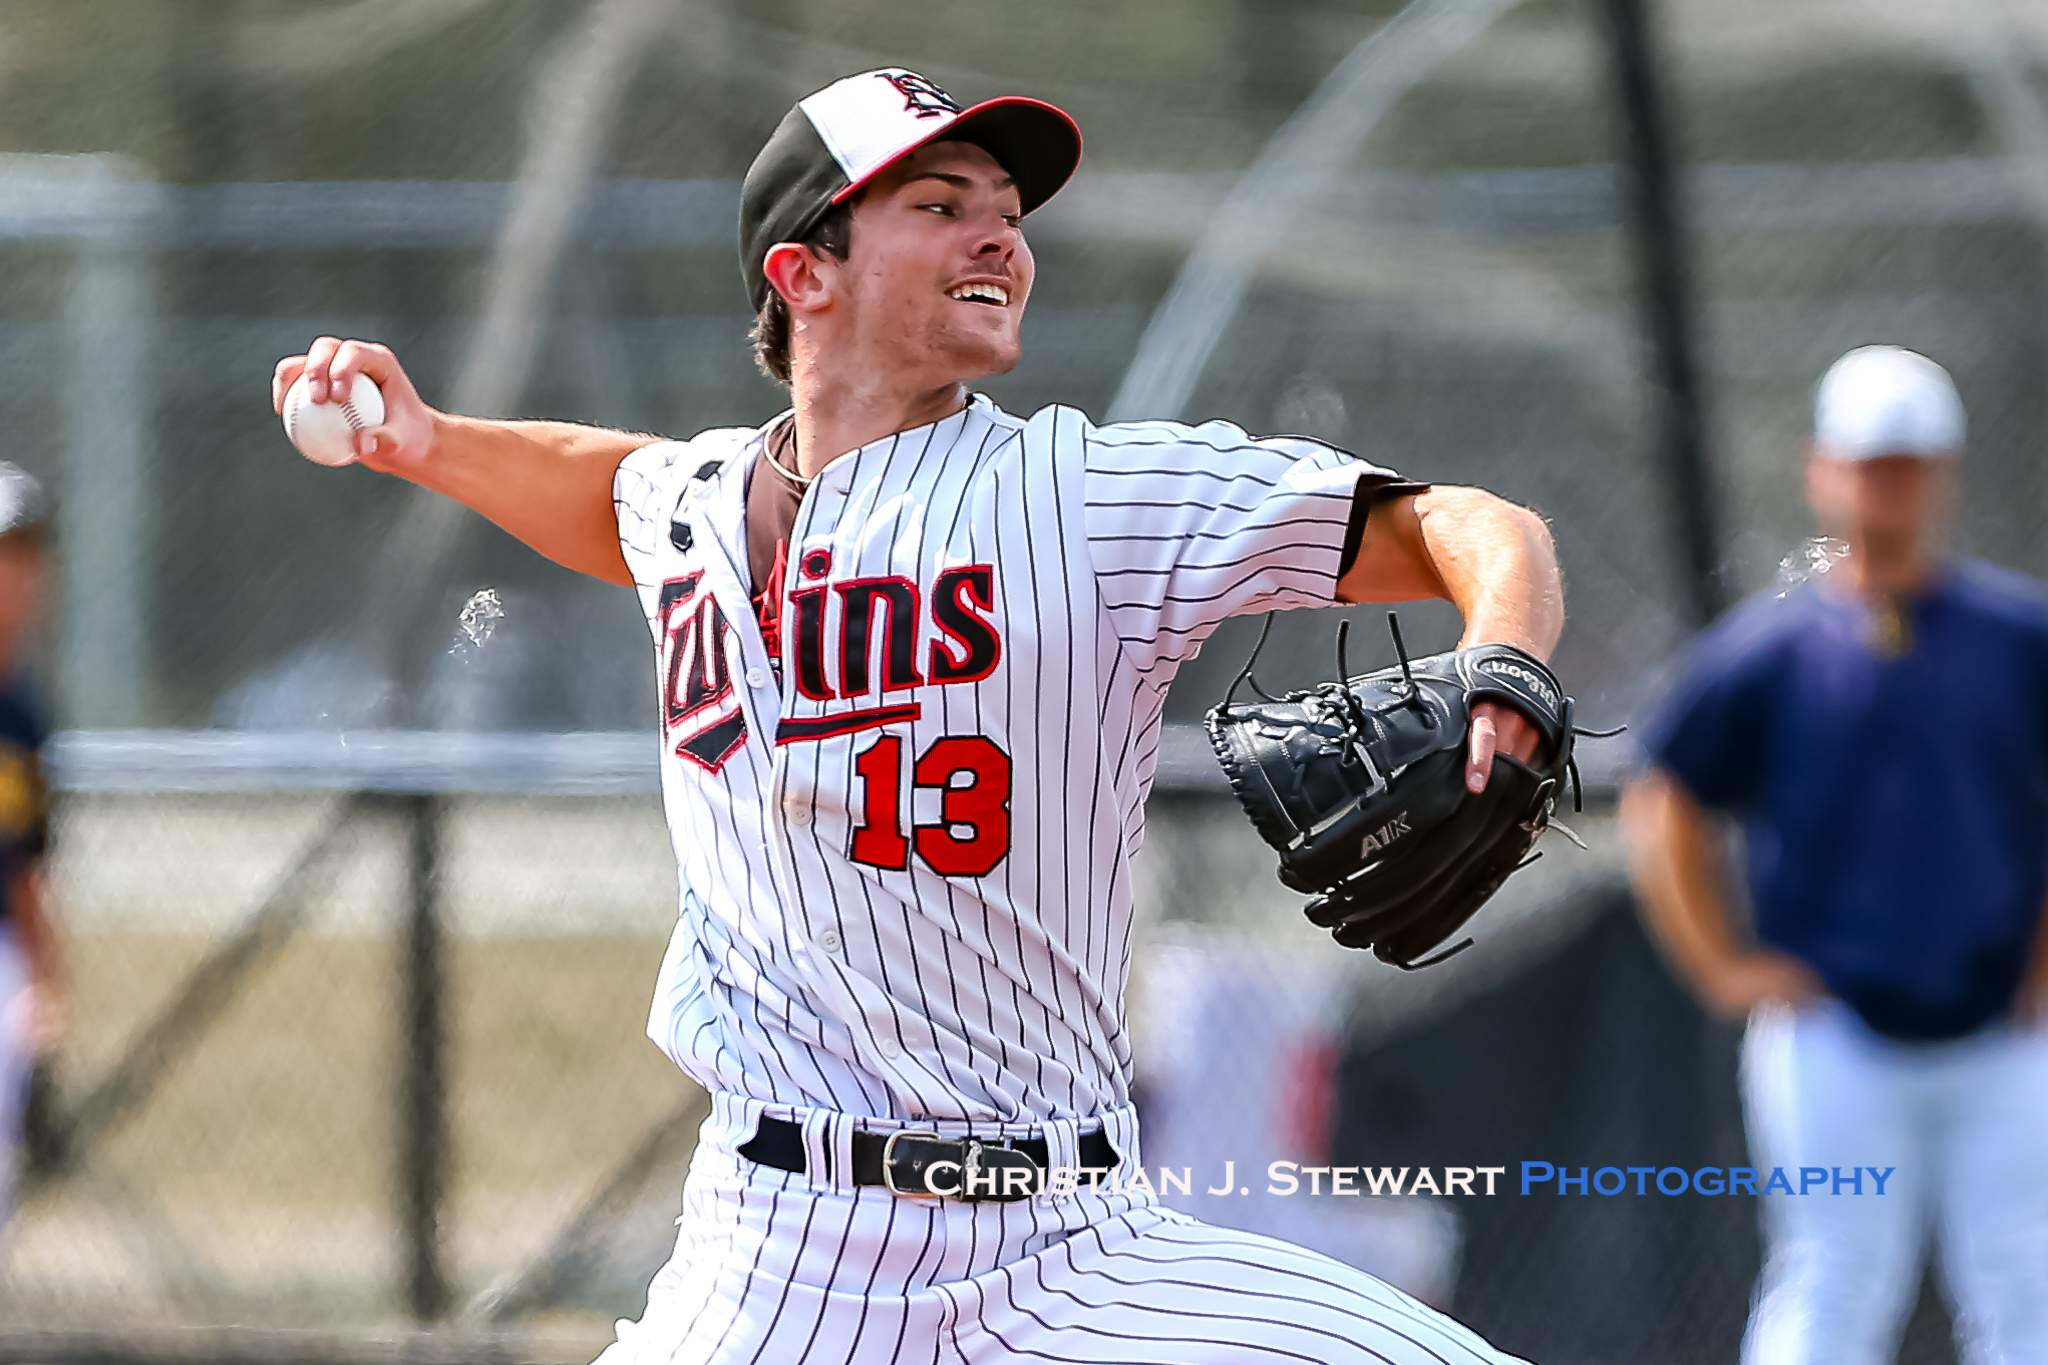 Adam Maier pitched a three-hit, complete game shut out to lead the North Shore Twins to a 5-0 win over the Langley Blaze Friday in Vancouver (Photo: Christian J. Stewart)